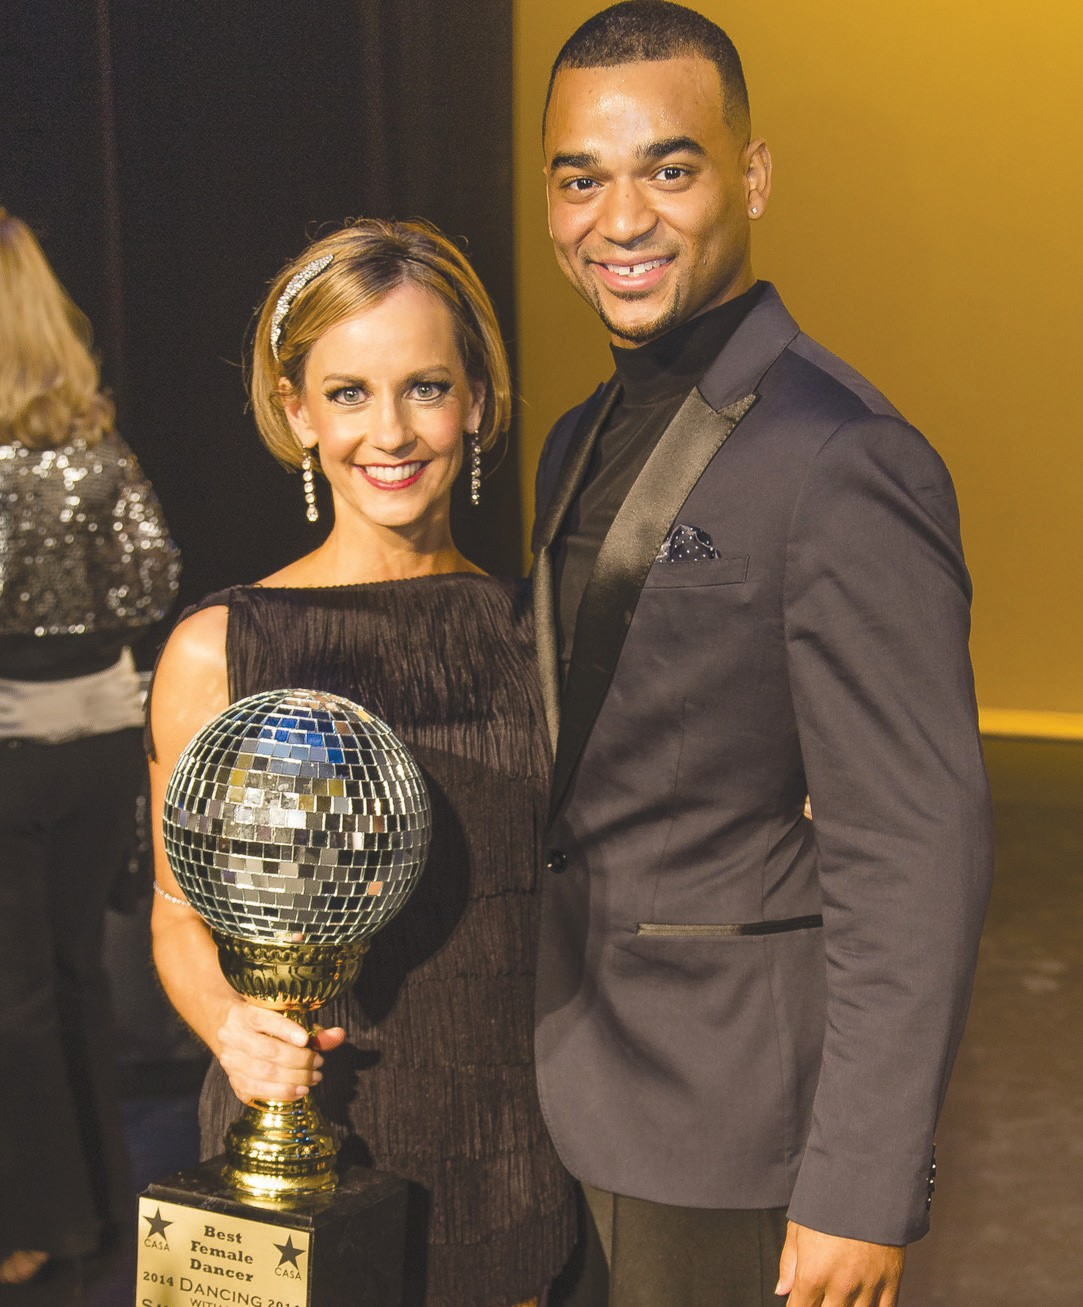 Shari Carney (Best Female, tie) and her partner professional dancer Joza Marion